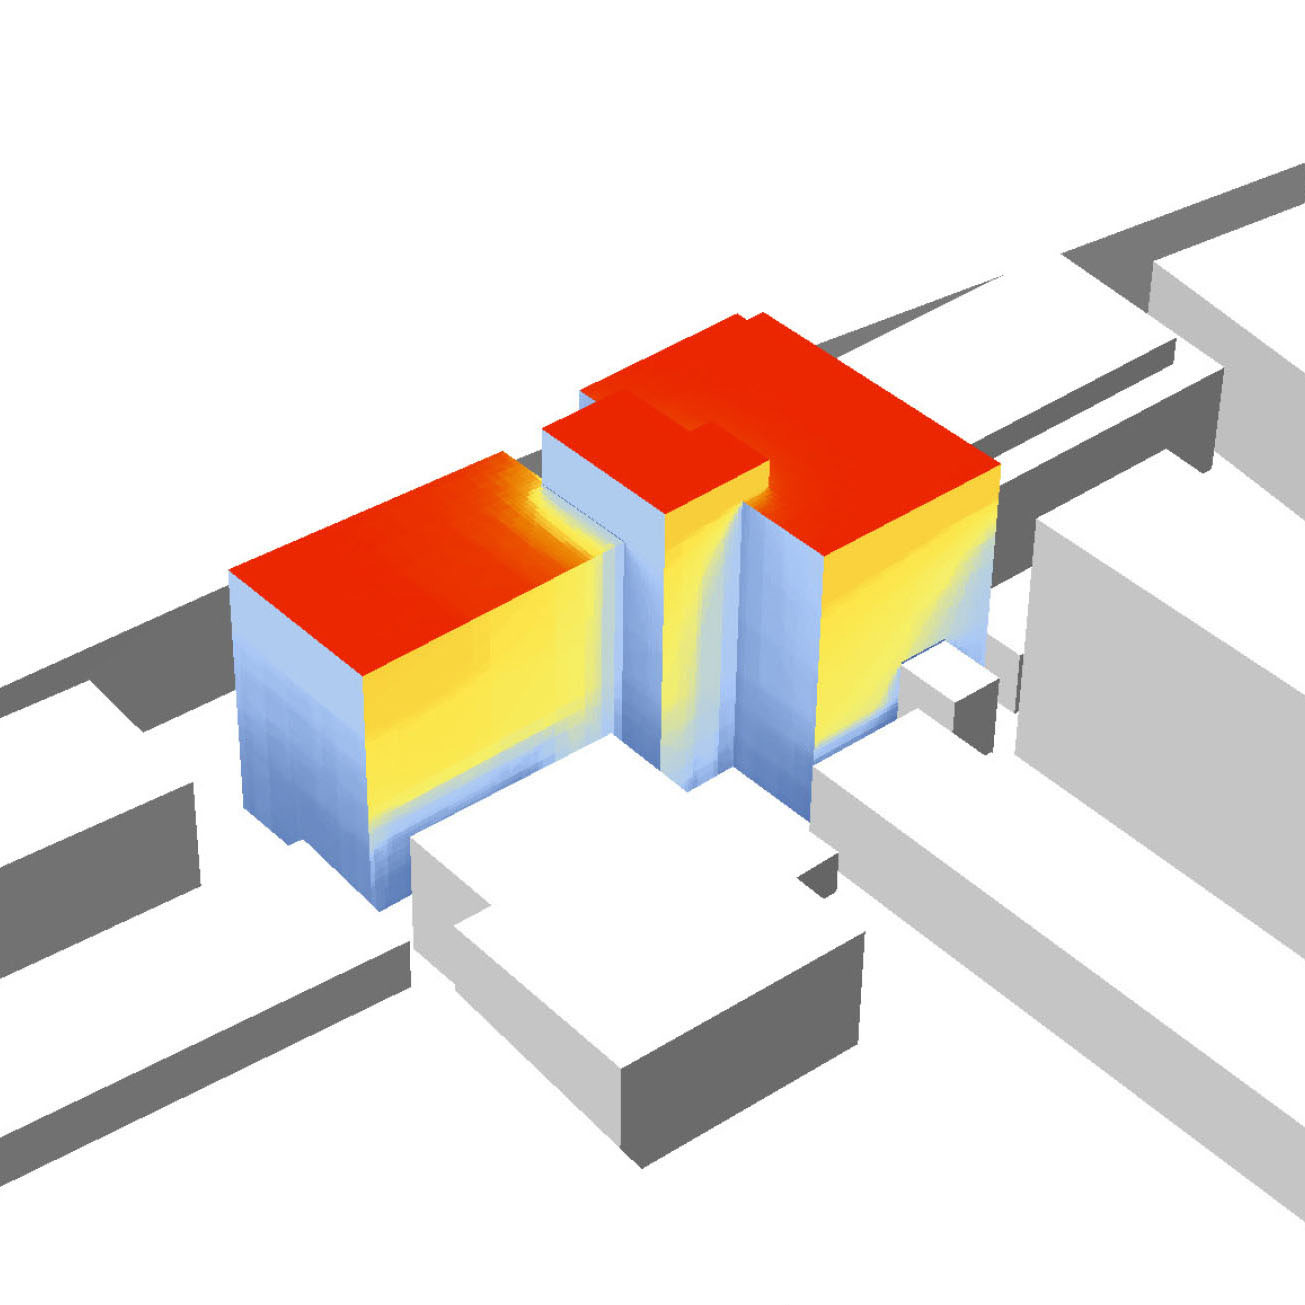 A heat mapped view of a building showing the building's environmental impact